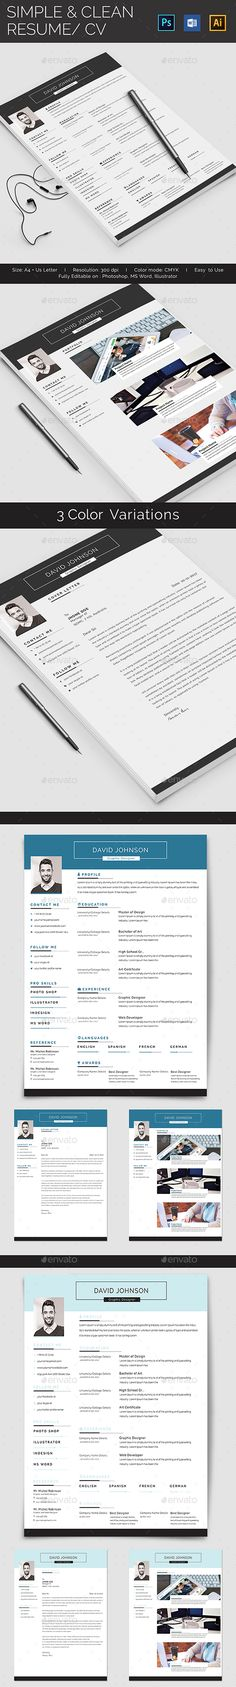 Simple Resume Template Set Simple, Simple resume template and Resume - easy simple resume template